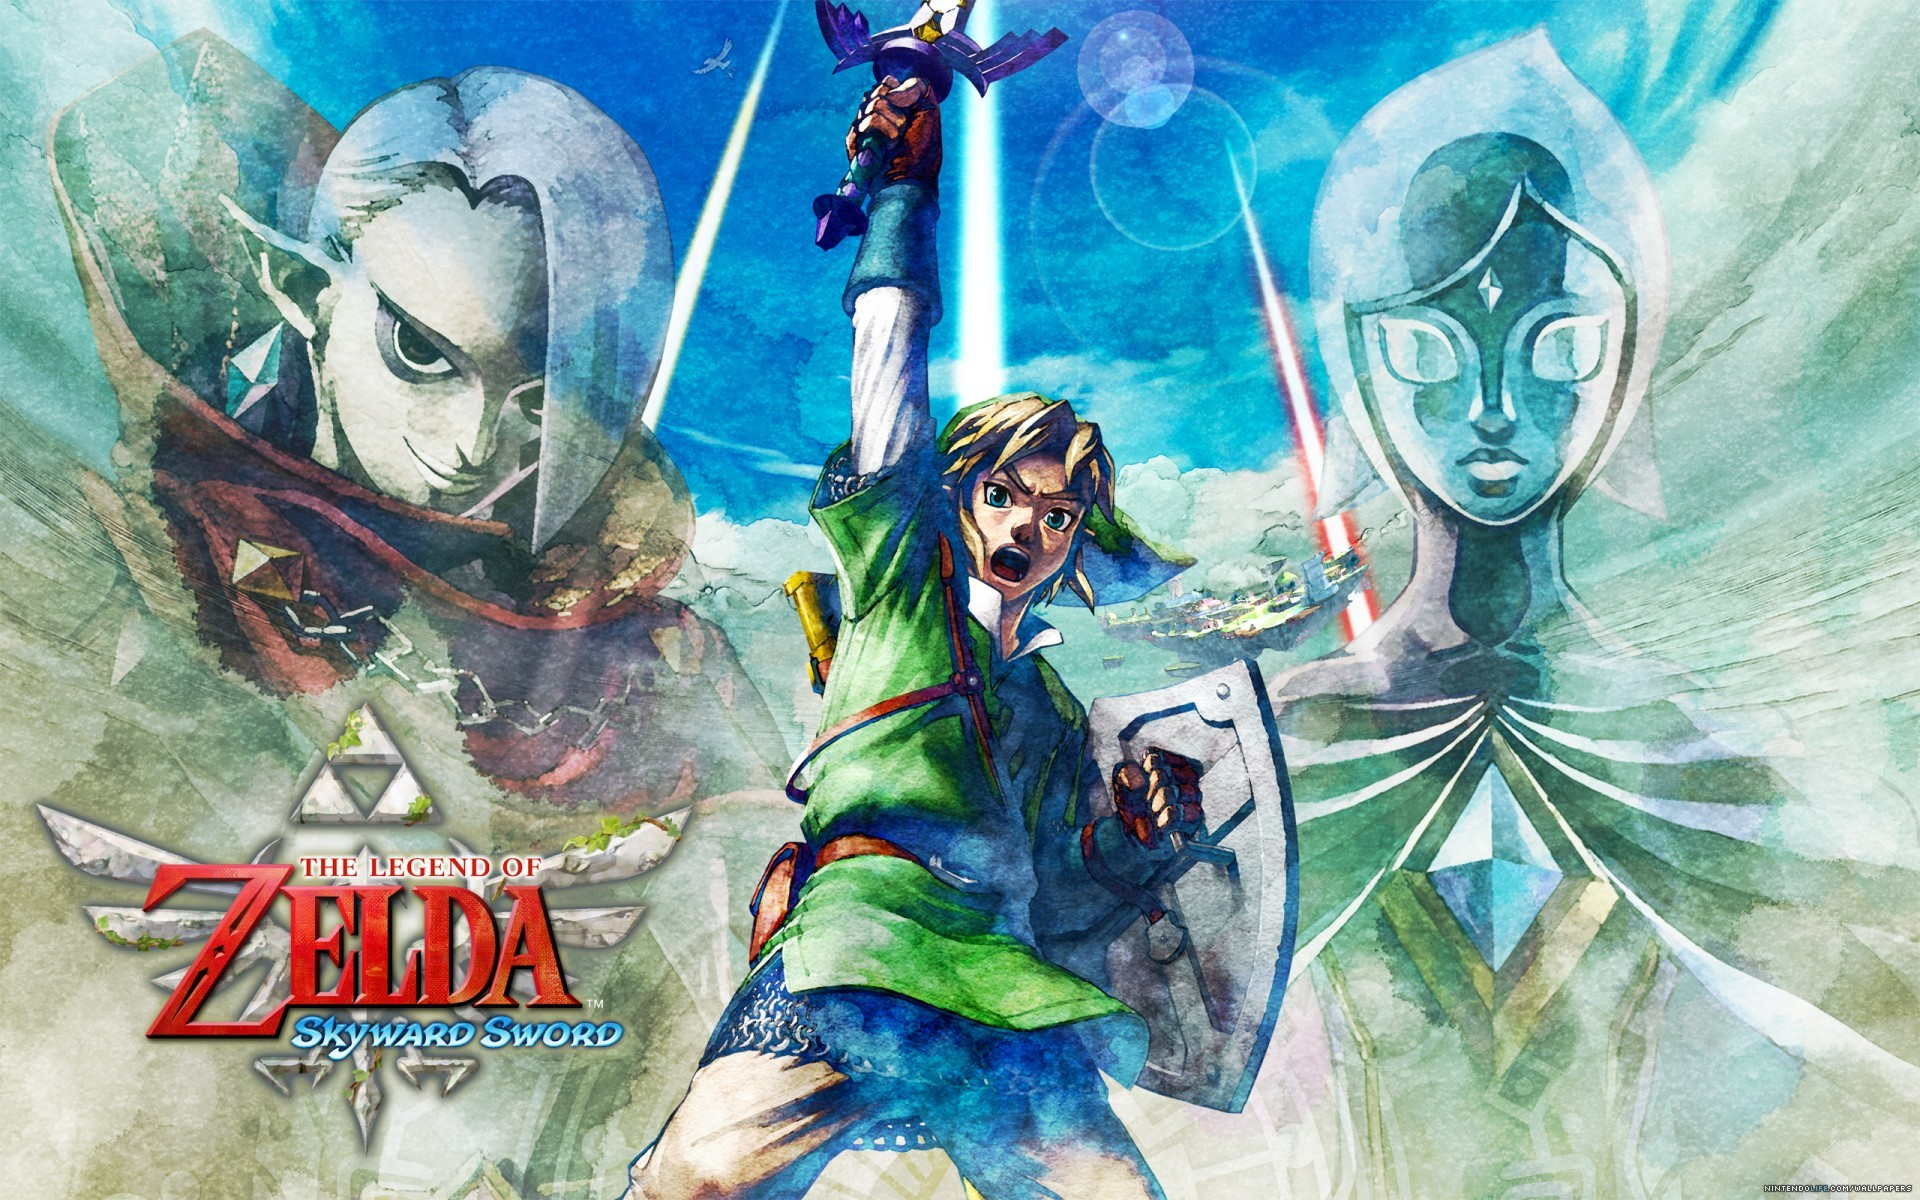 1920x1200 The Legend Of Zelda Wallpapers | HD Wallpapers | Pinterest | Wallpaper and  Hd wallpaper